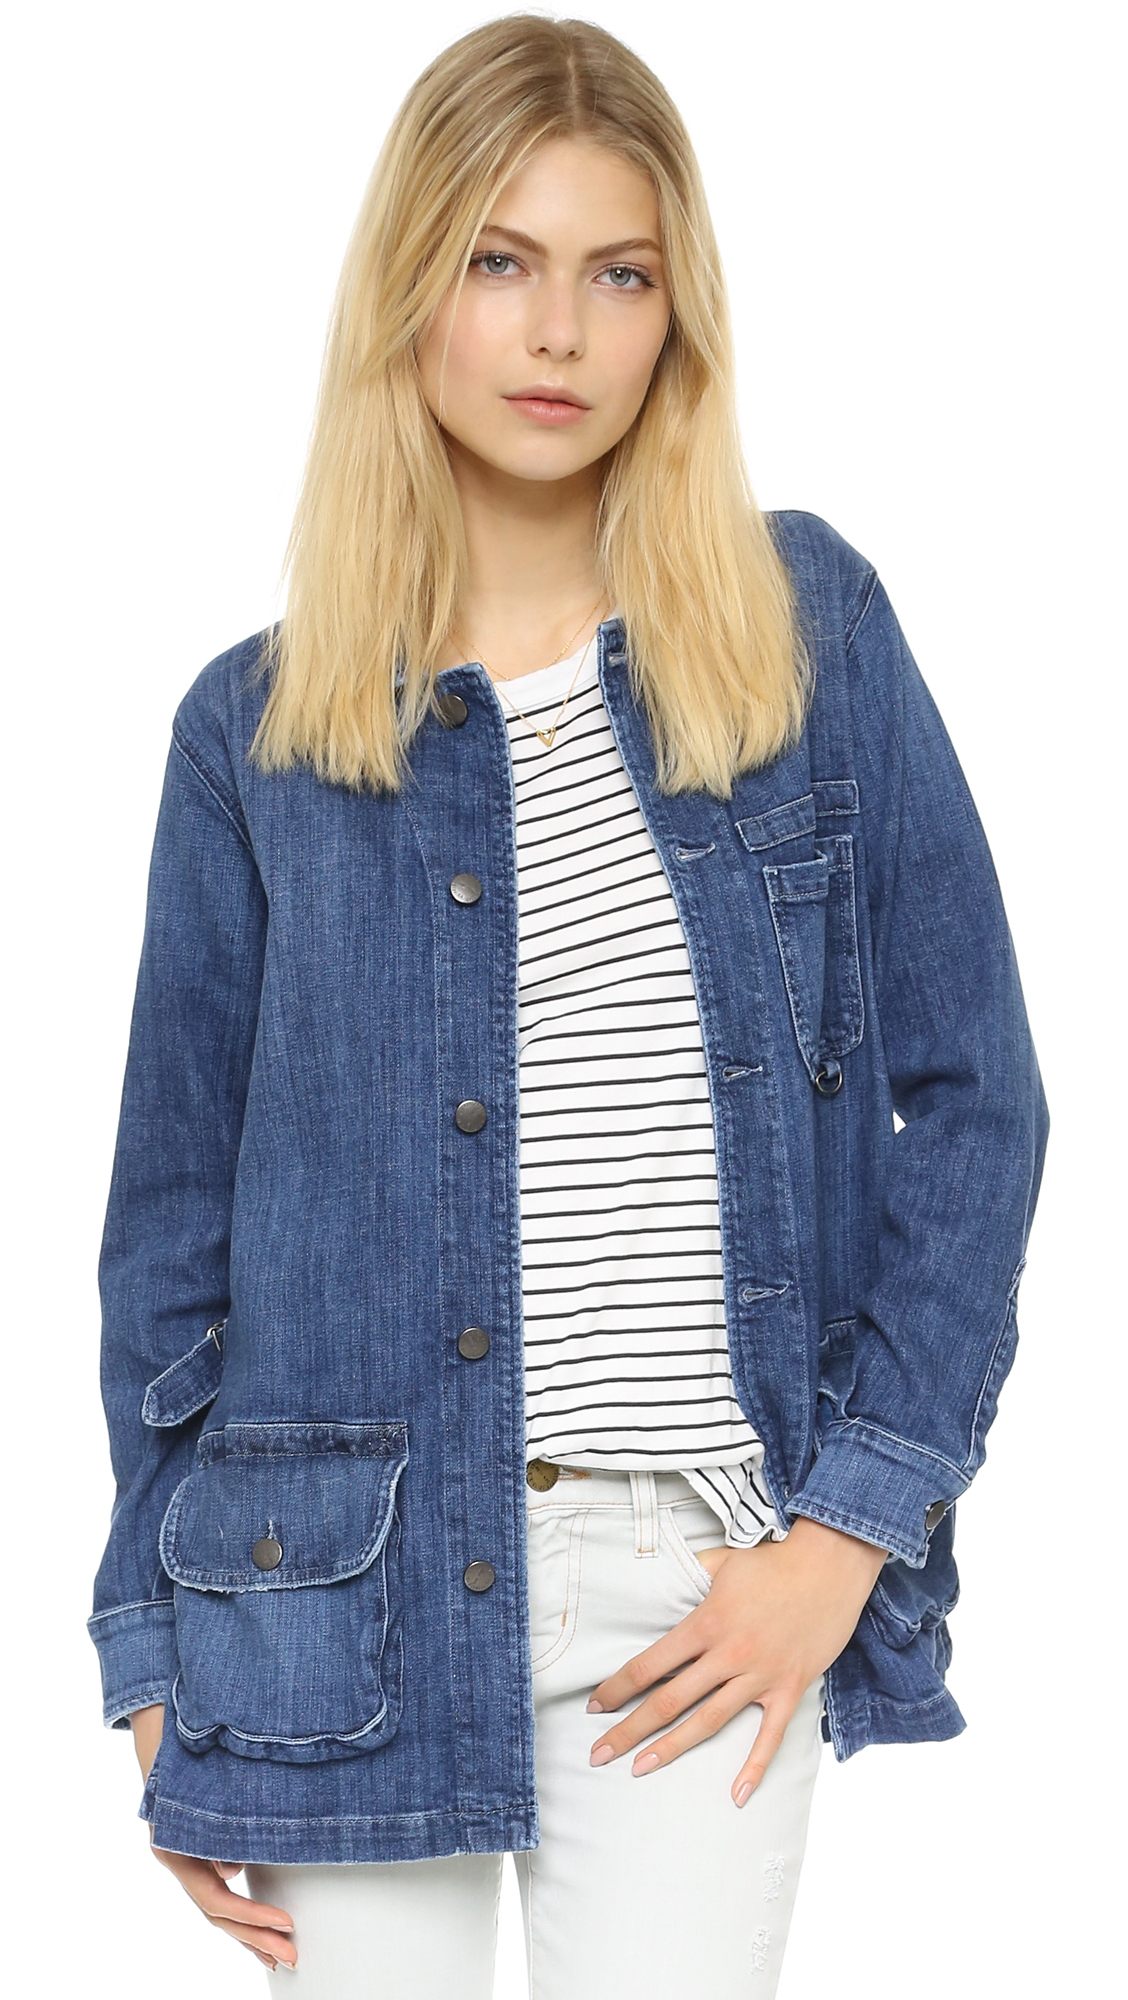 Denim jackets for ladies – Modern fashion jacket photo blog